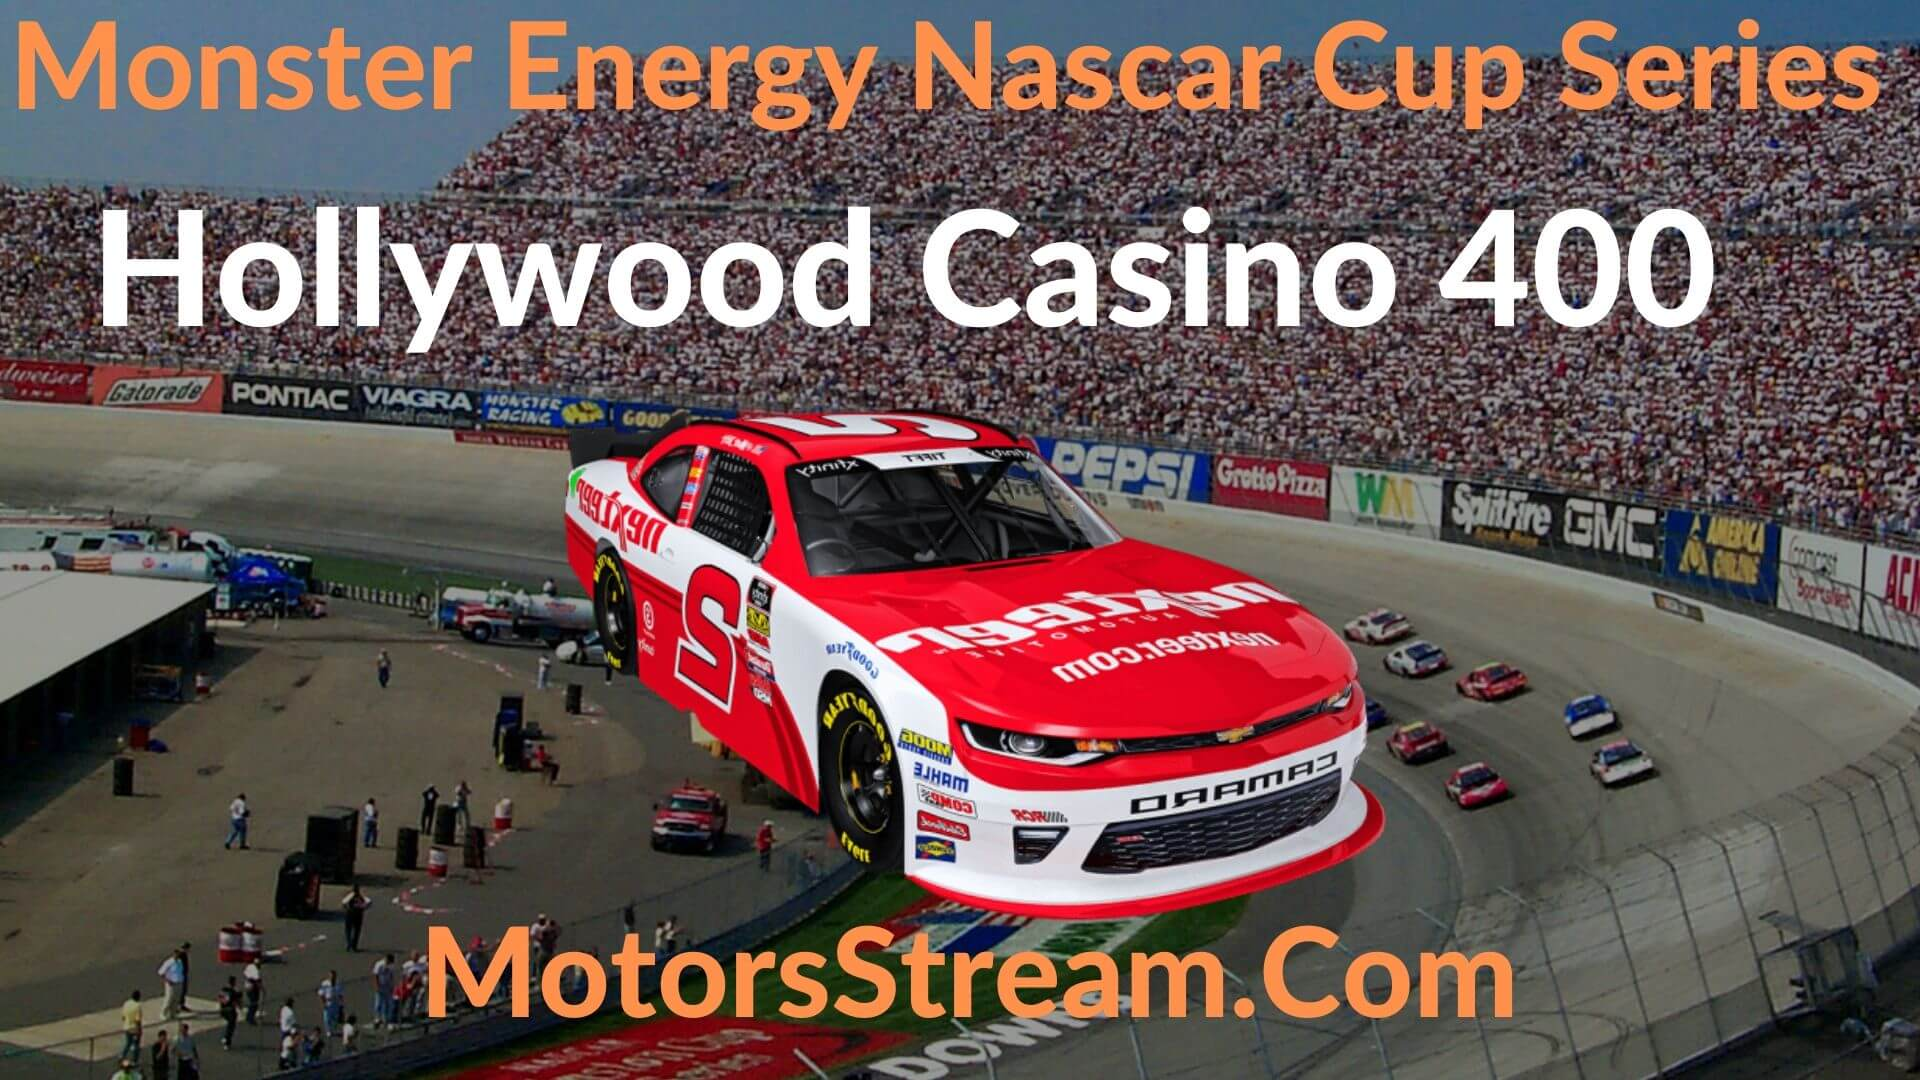 Hollywood Casino 400 Live Stream | NASCAR CUP 2020